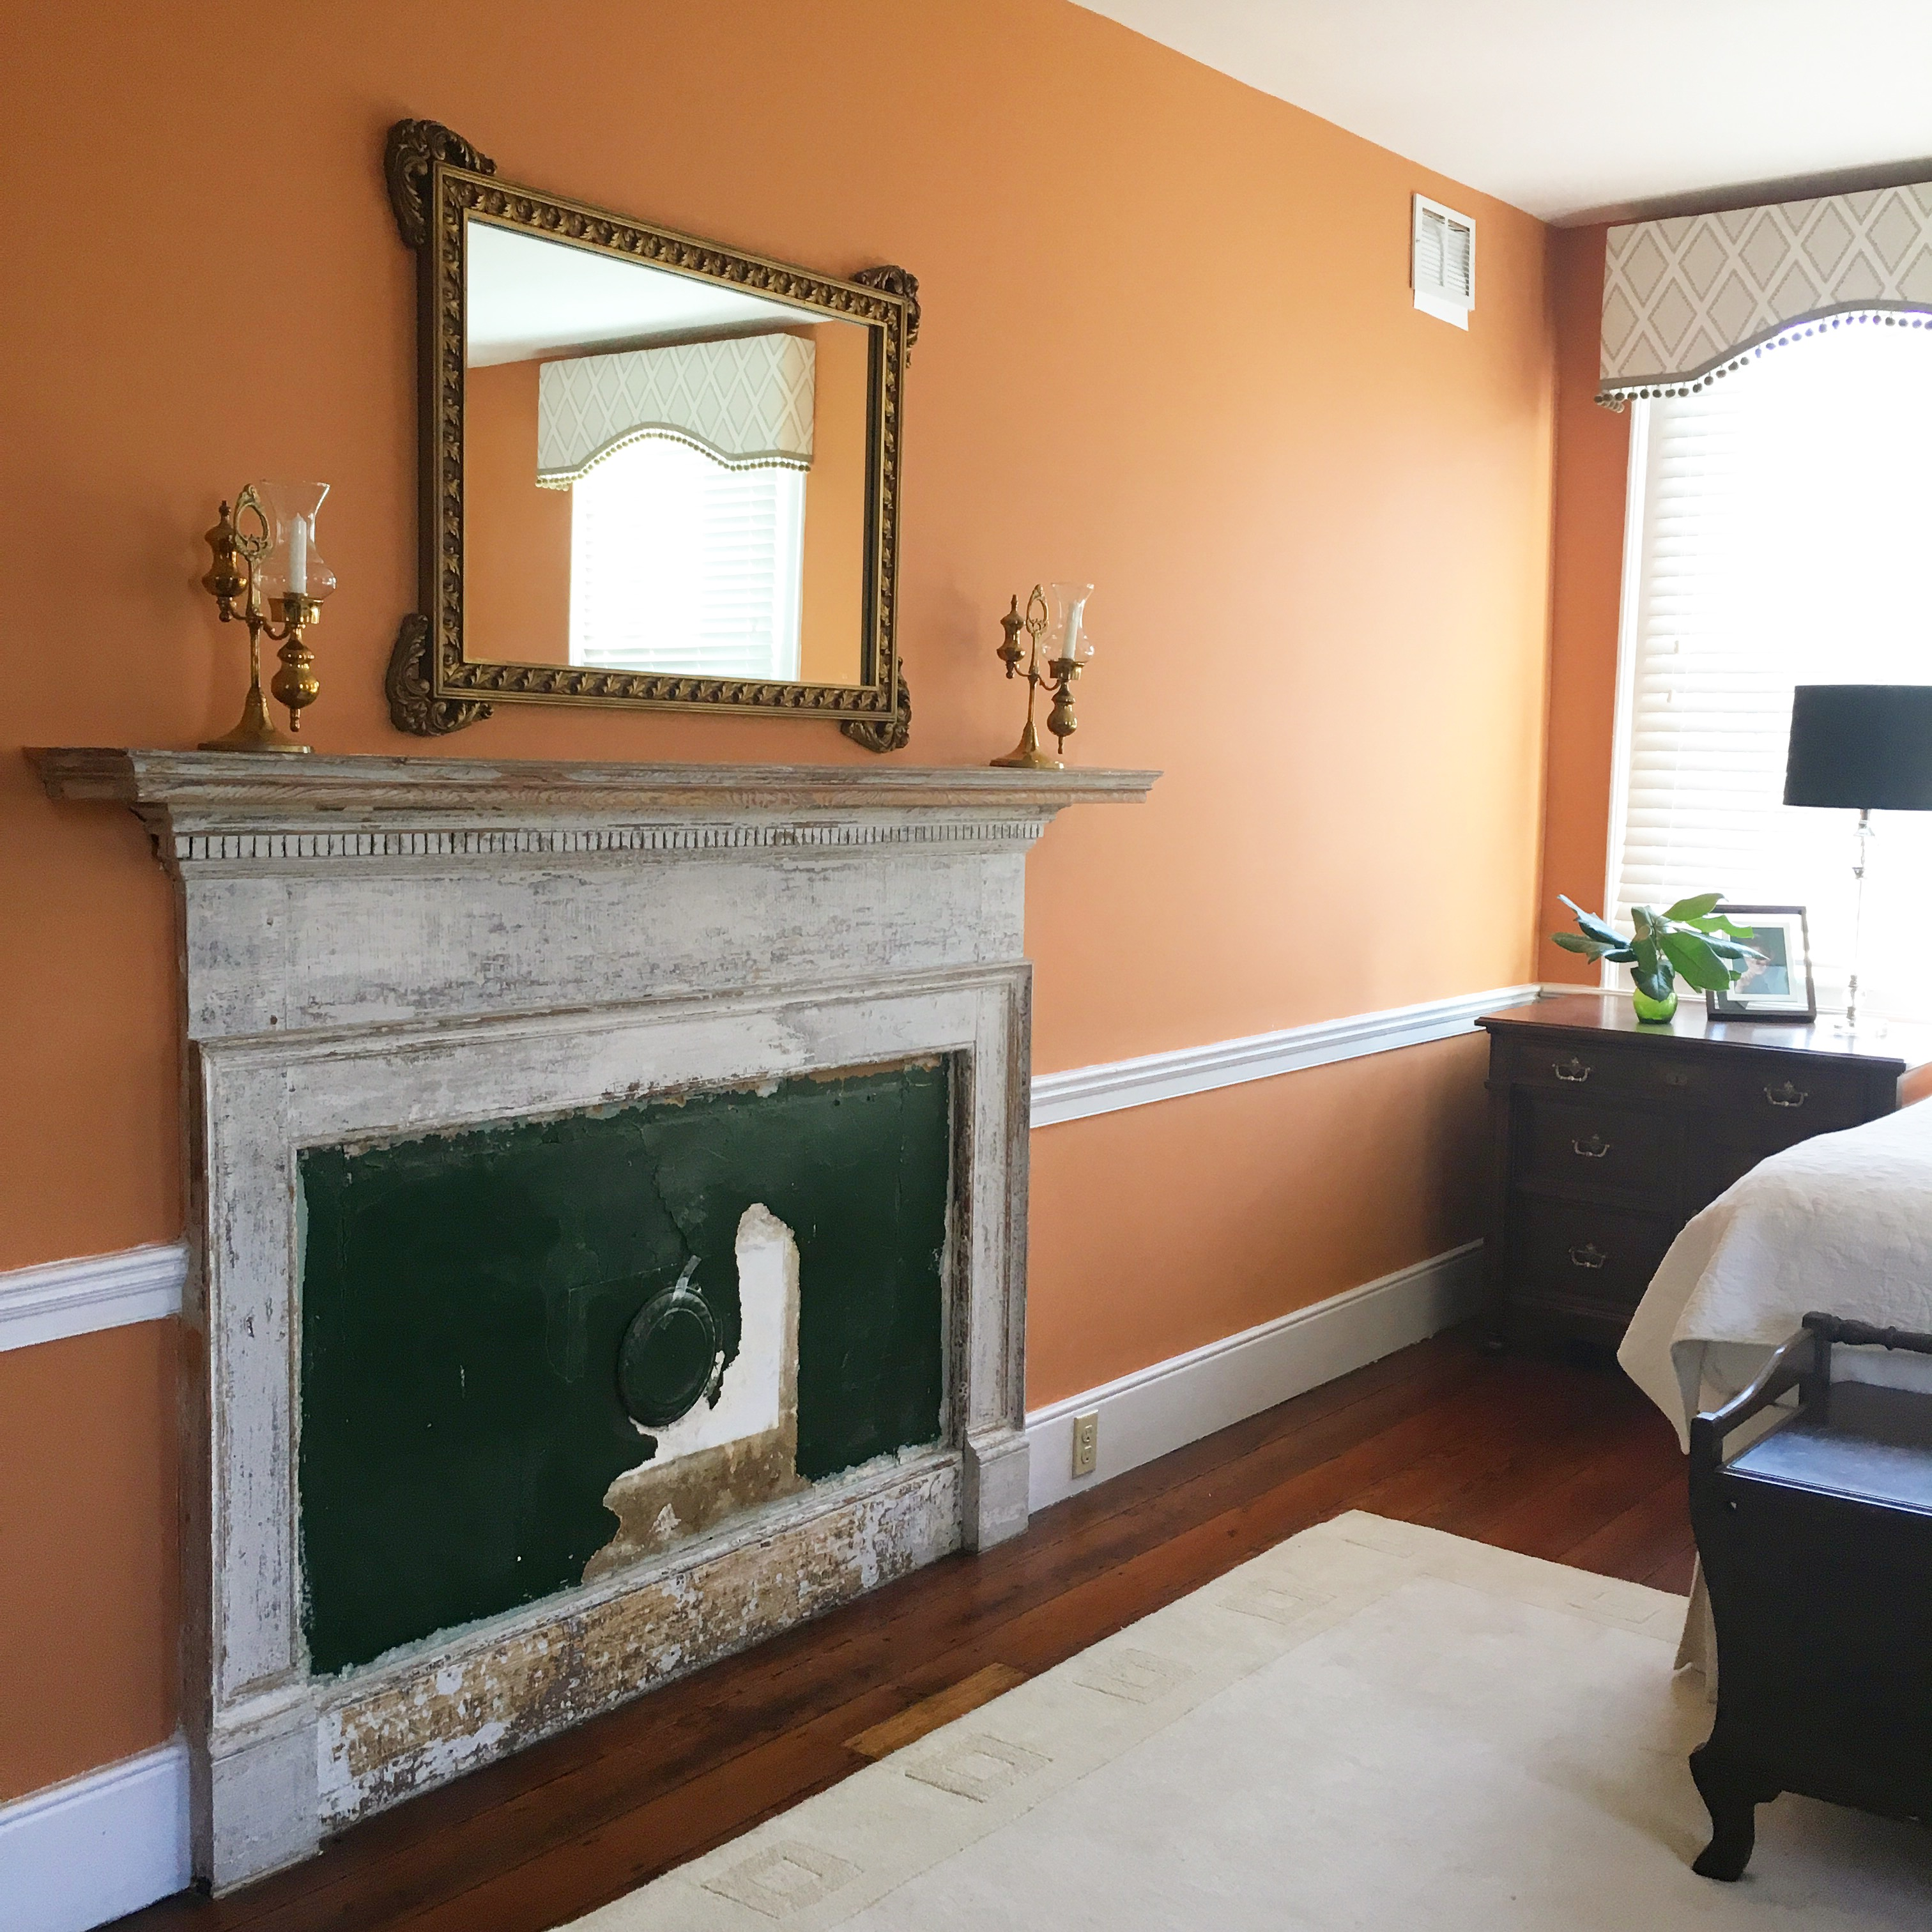 Historic renovation, original fireplace was left as a modern art piece